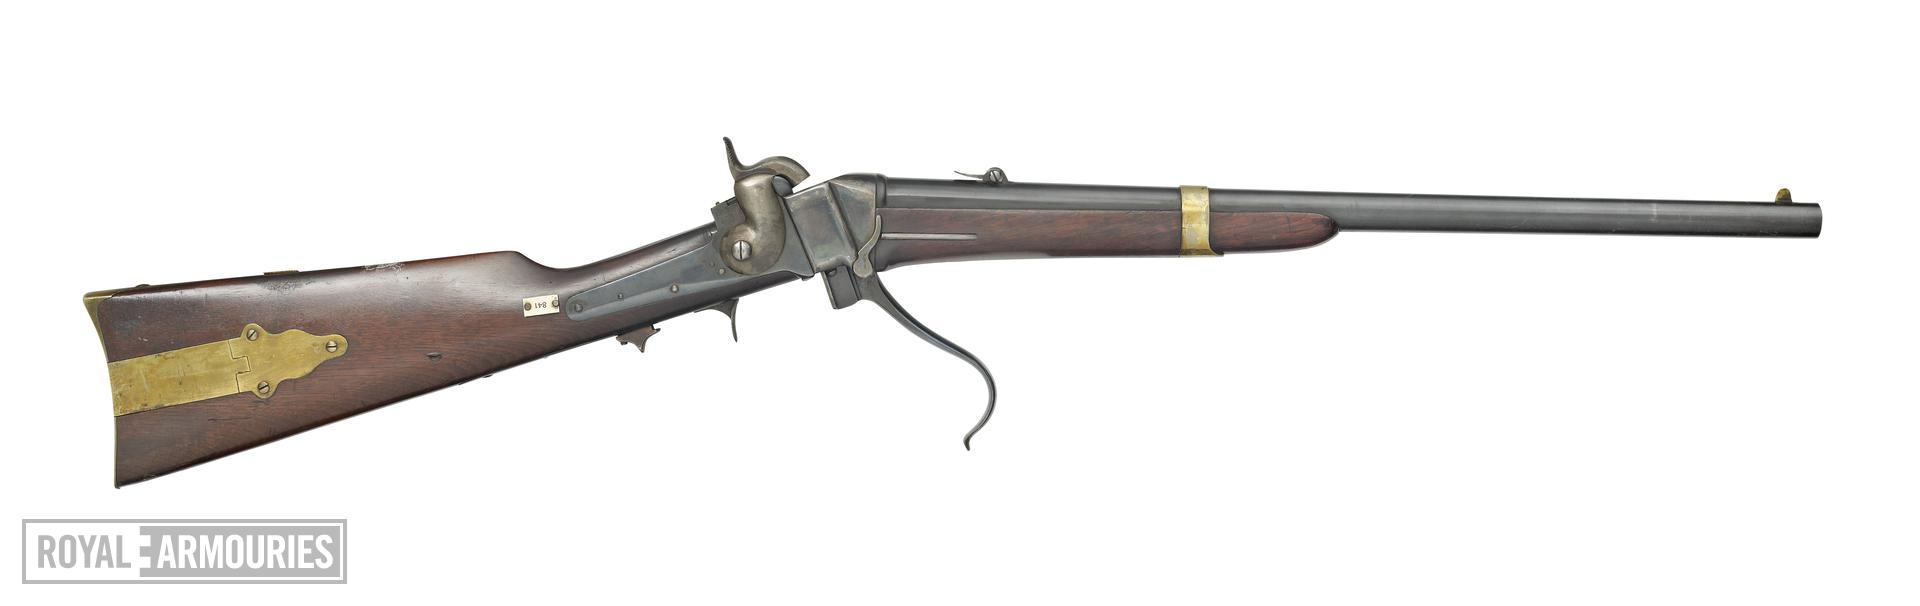 Percussion breech-loading military carbine - Sharps Model 1852